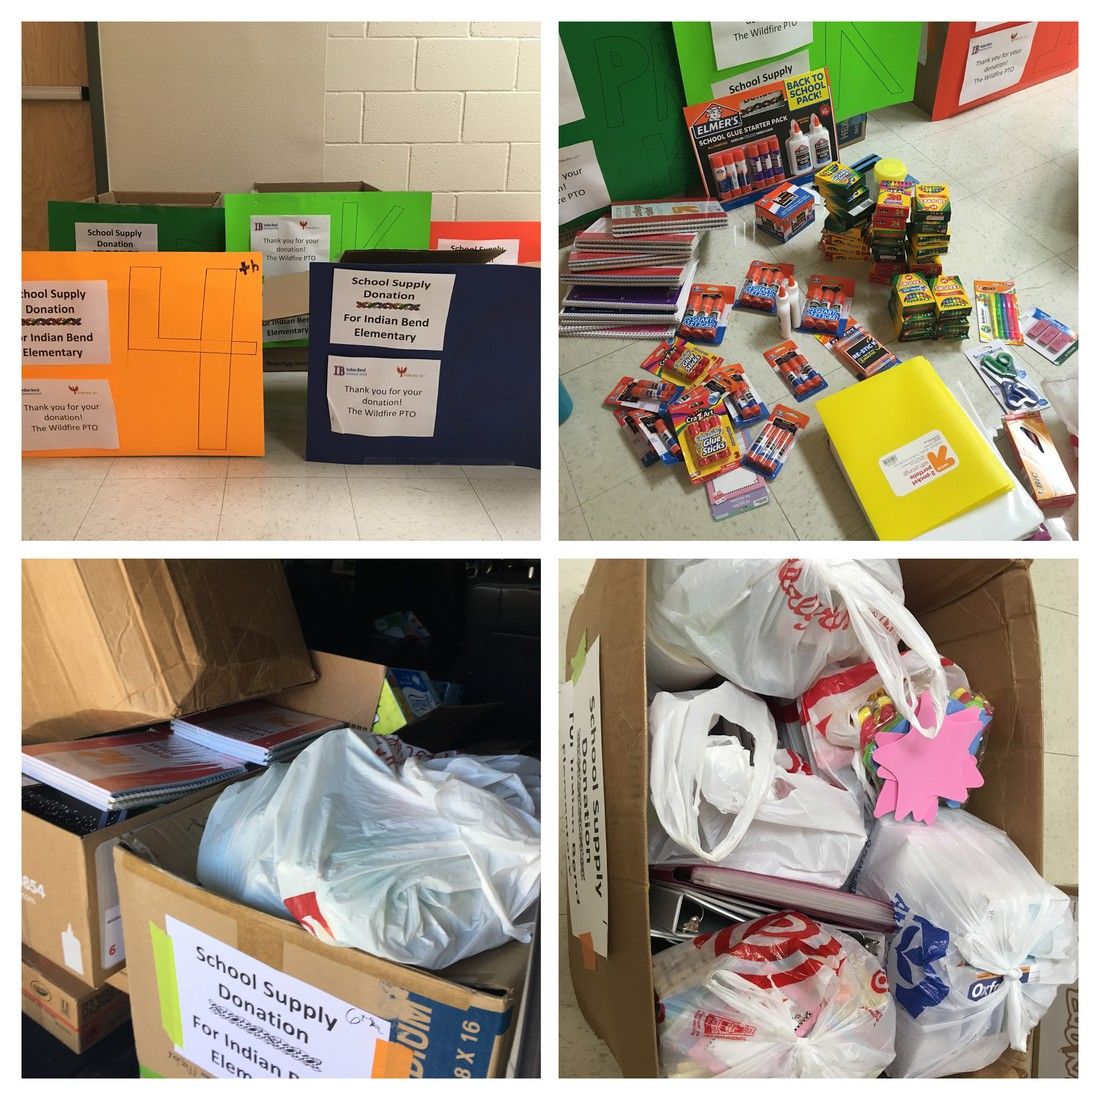 collage of pictures of school supply donations to Indian Bend Elementary School